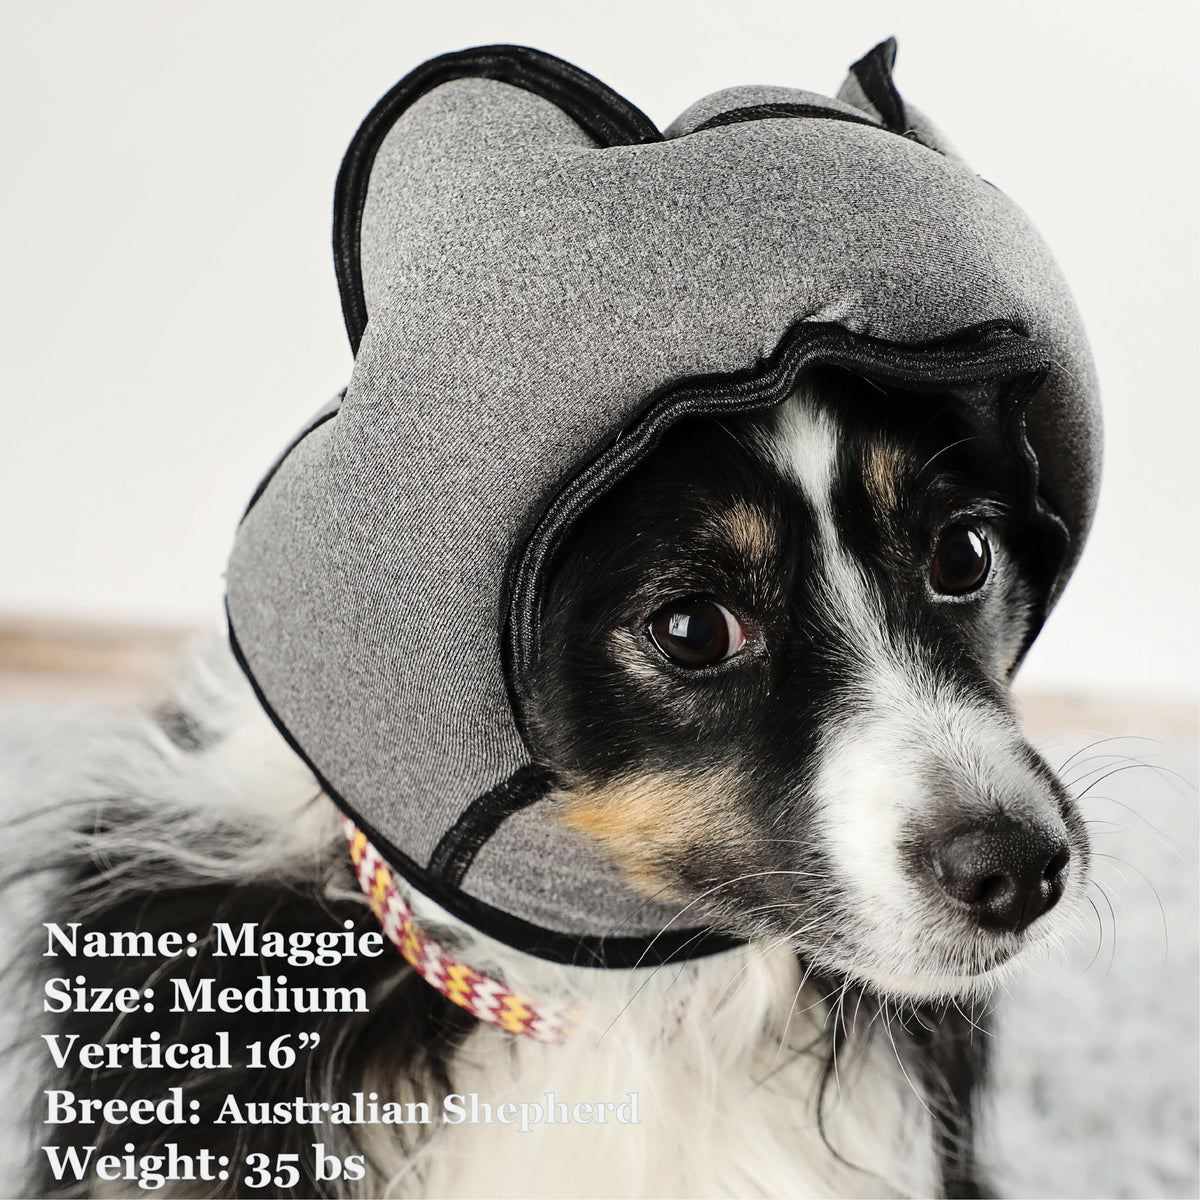 Maggie is a Shepherd in a Medium Grey PAWNIX Noise Cancelling Headset for dogs